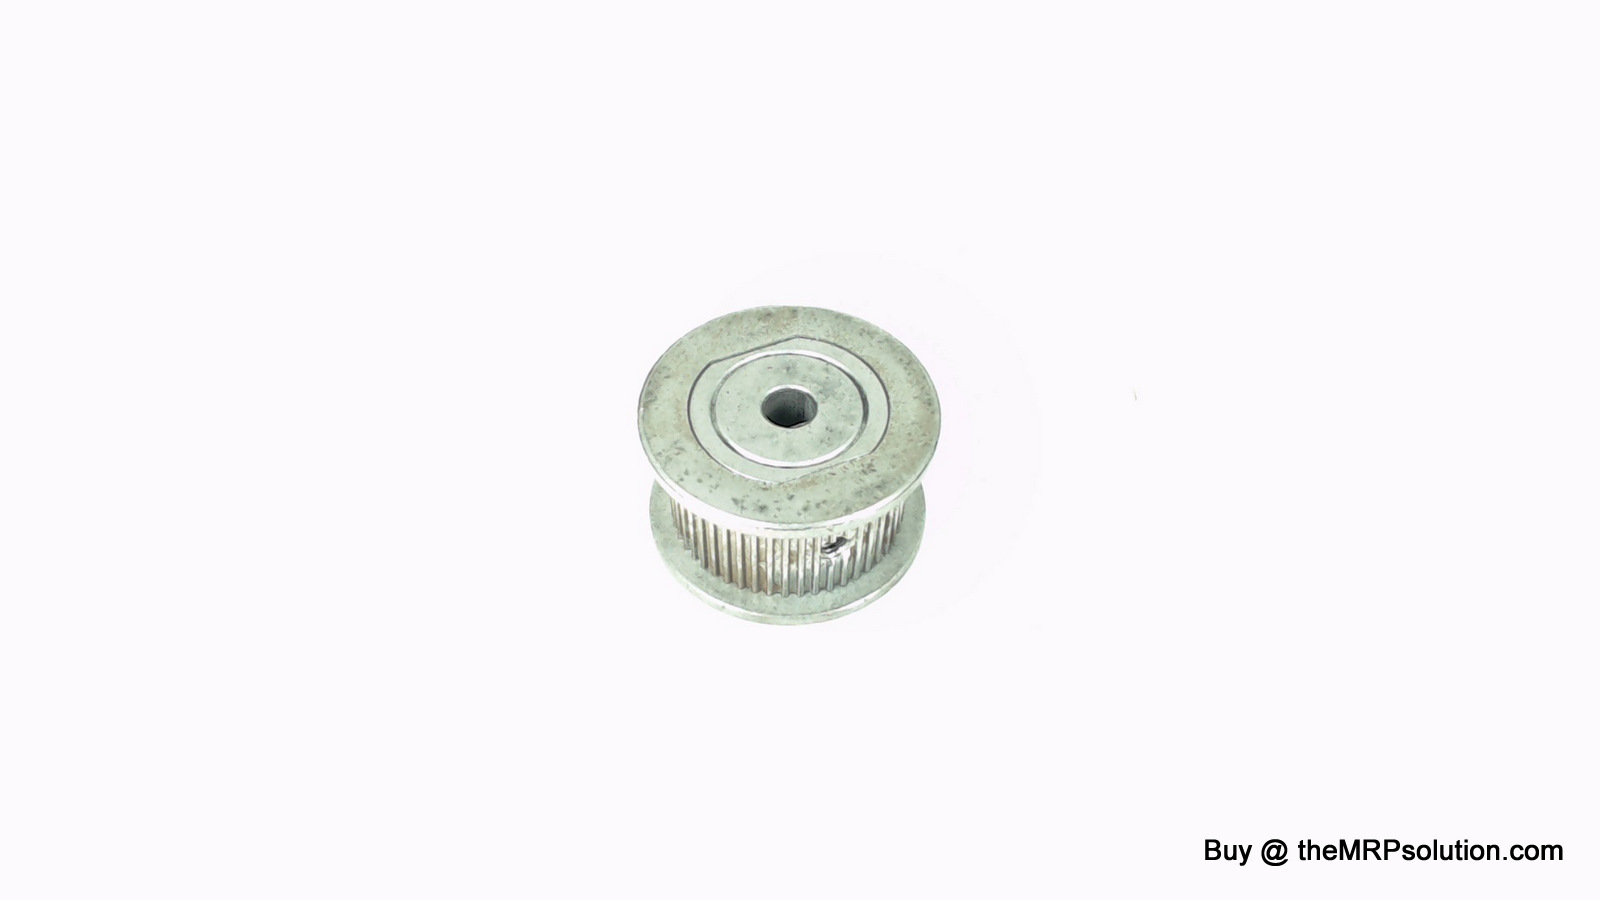 ZEBRA 31336M MTU/RTU PULLEY, 110XI III PLUS New